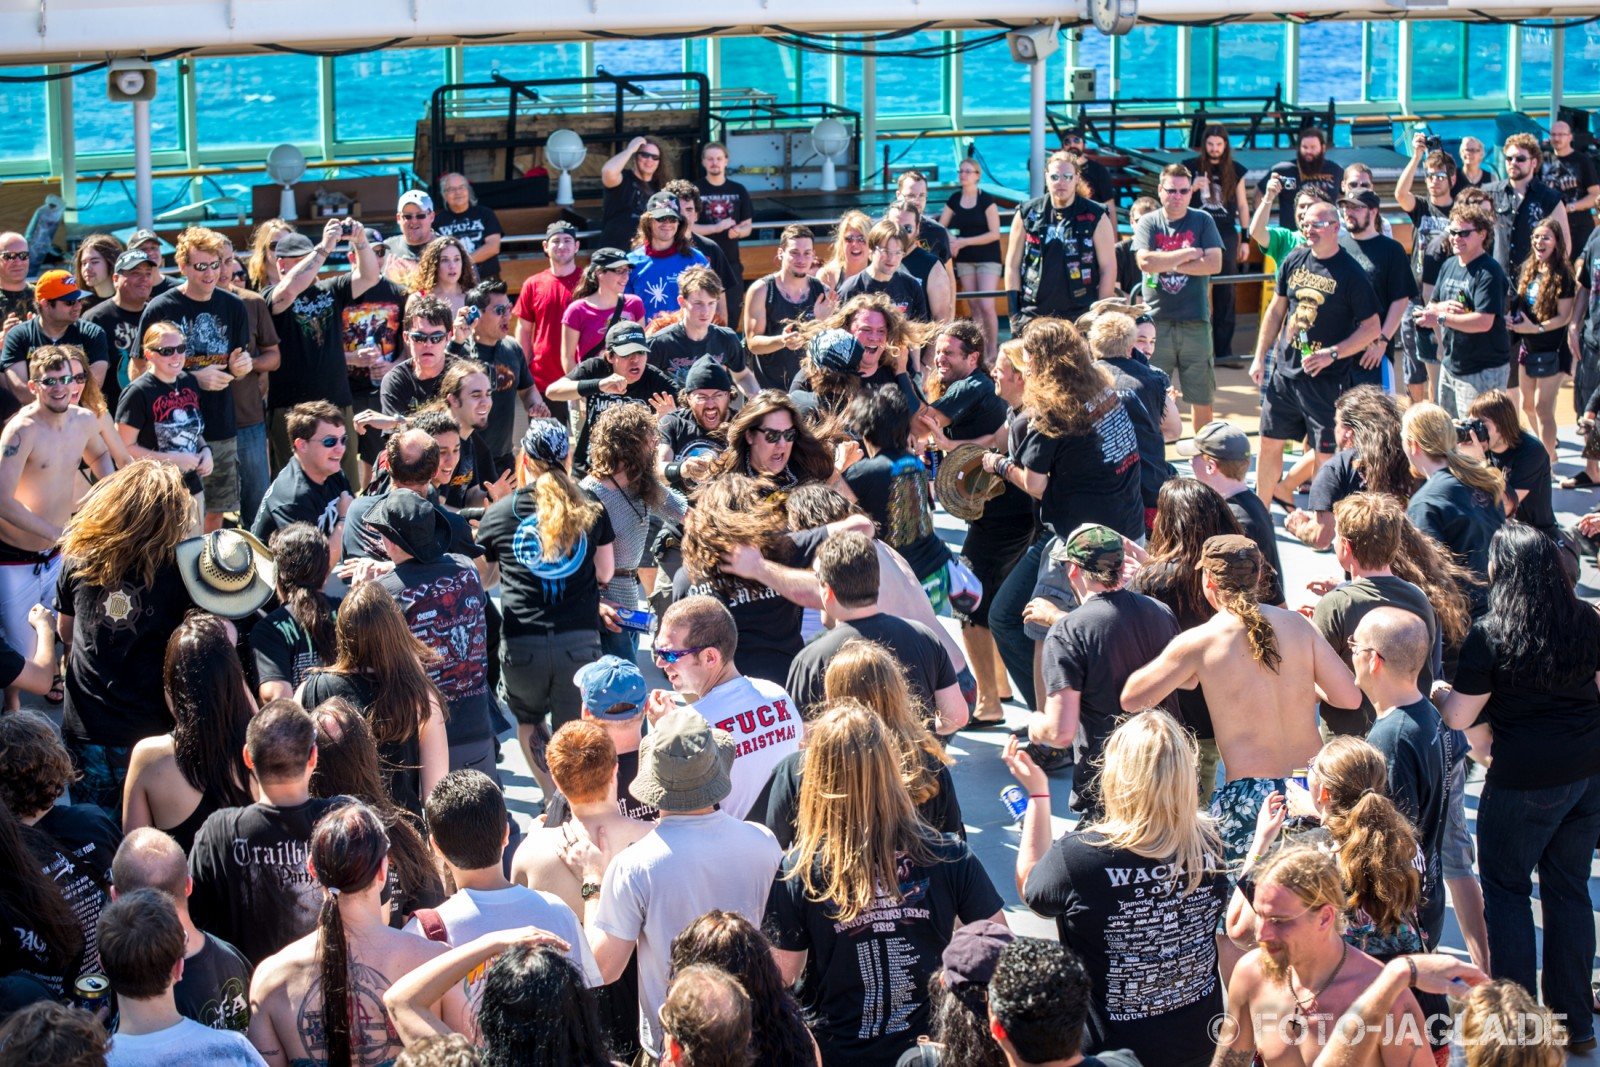 70000 Tons of Metal 2013 ::. Wall of Death on Pooldeck ::. http://www.foto-jagla.de